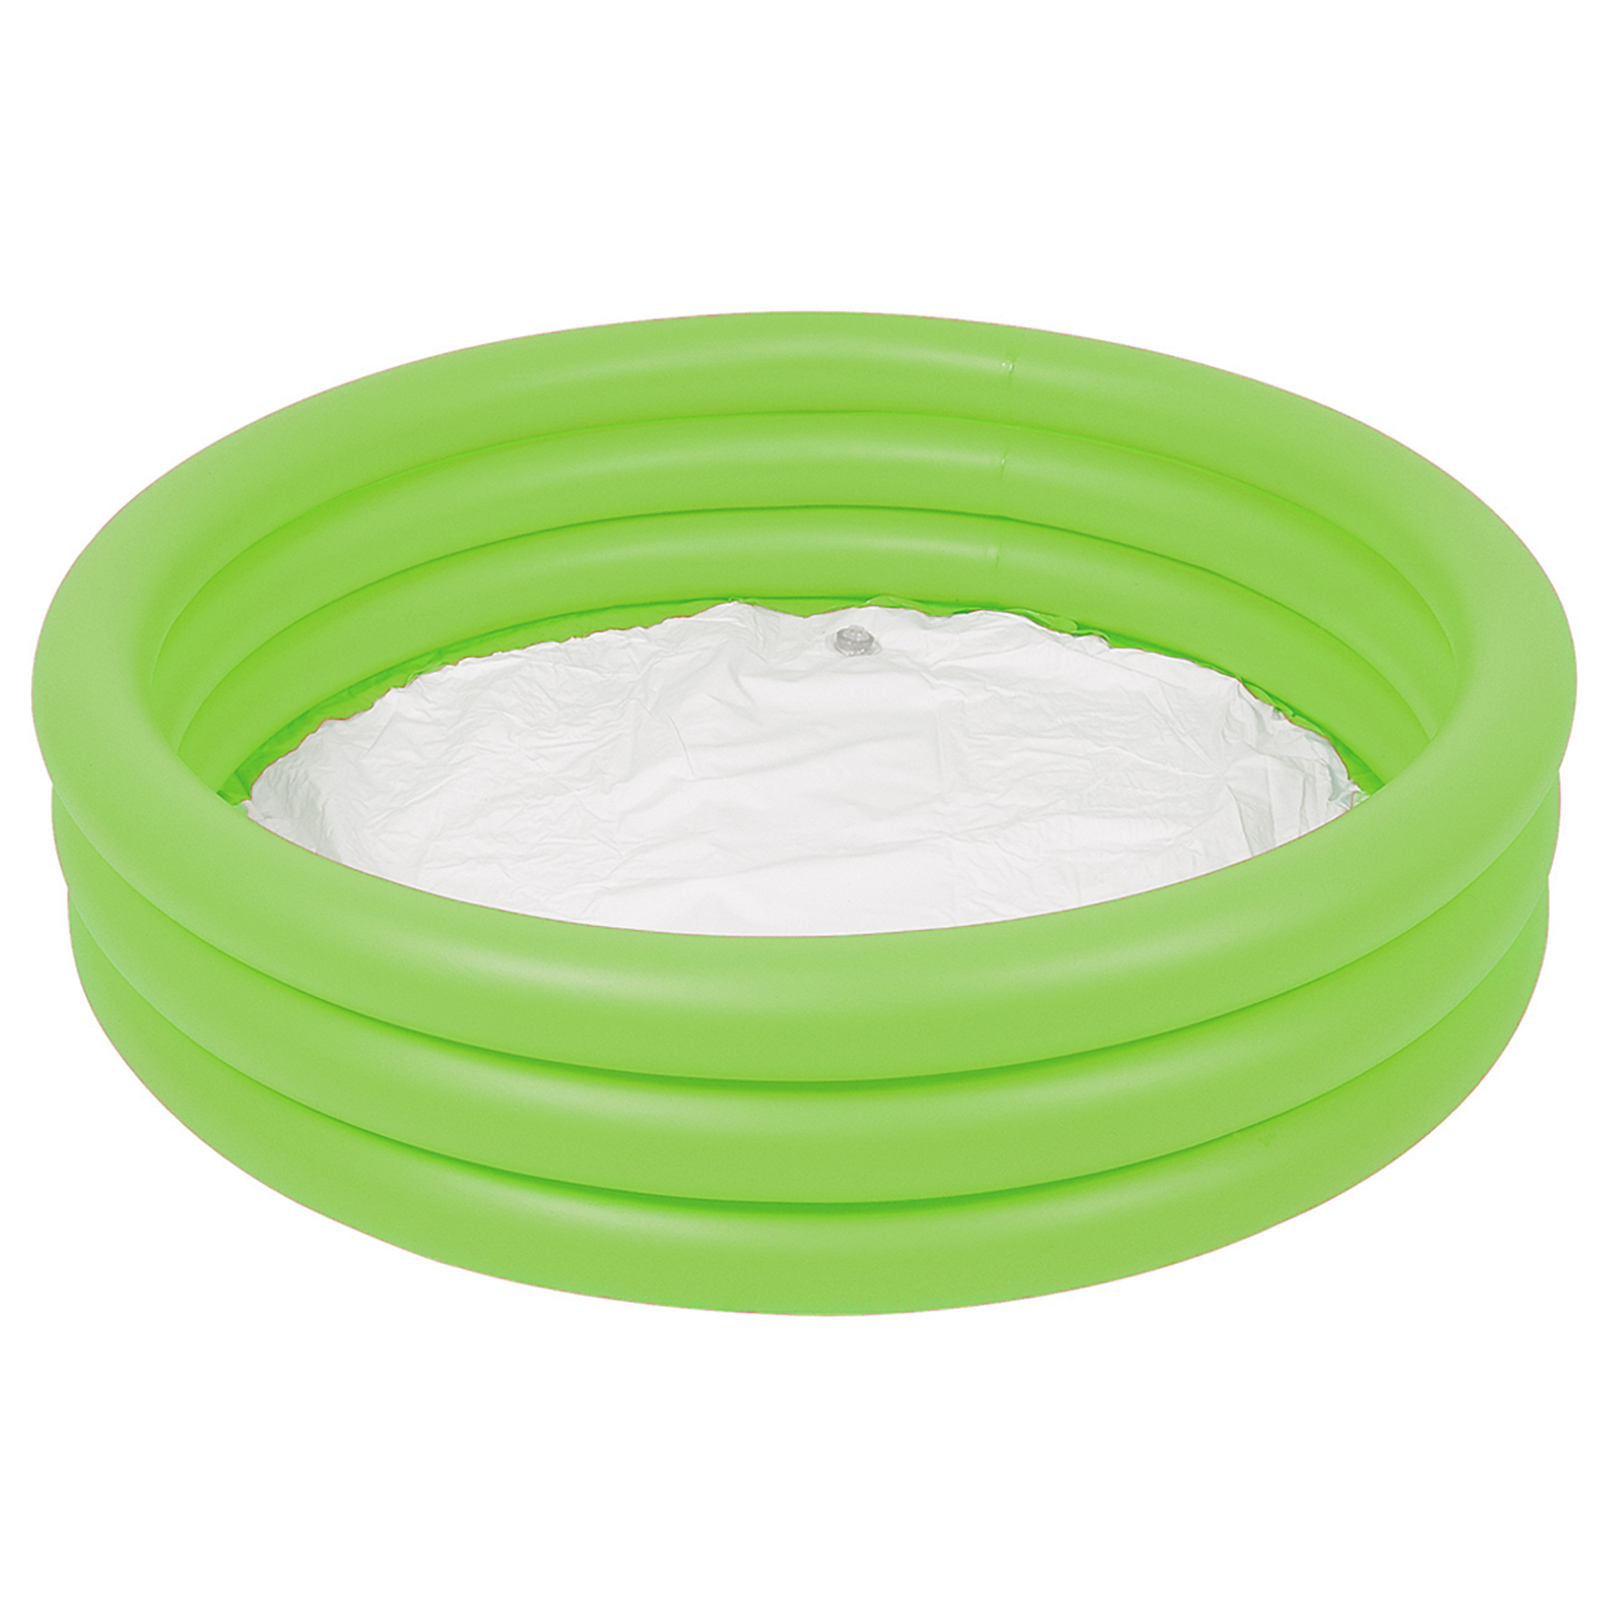 Bestway 3 ringed inflatable green swimming paddling pool for Small paddling pool